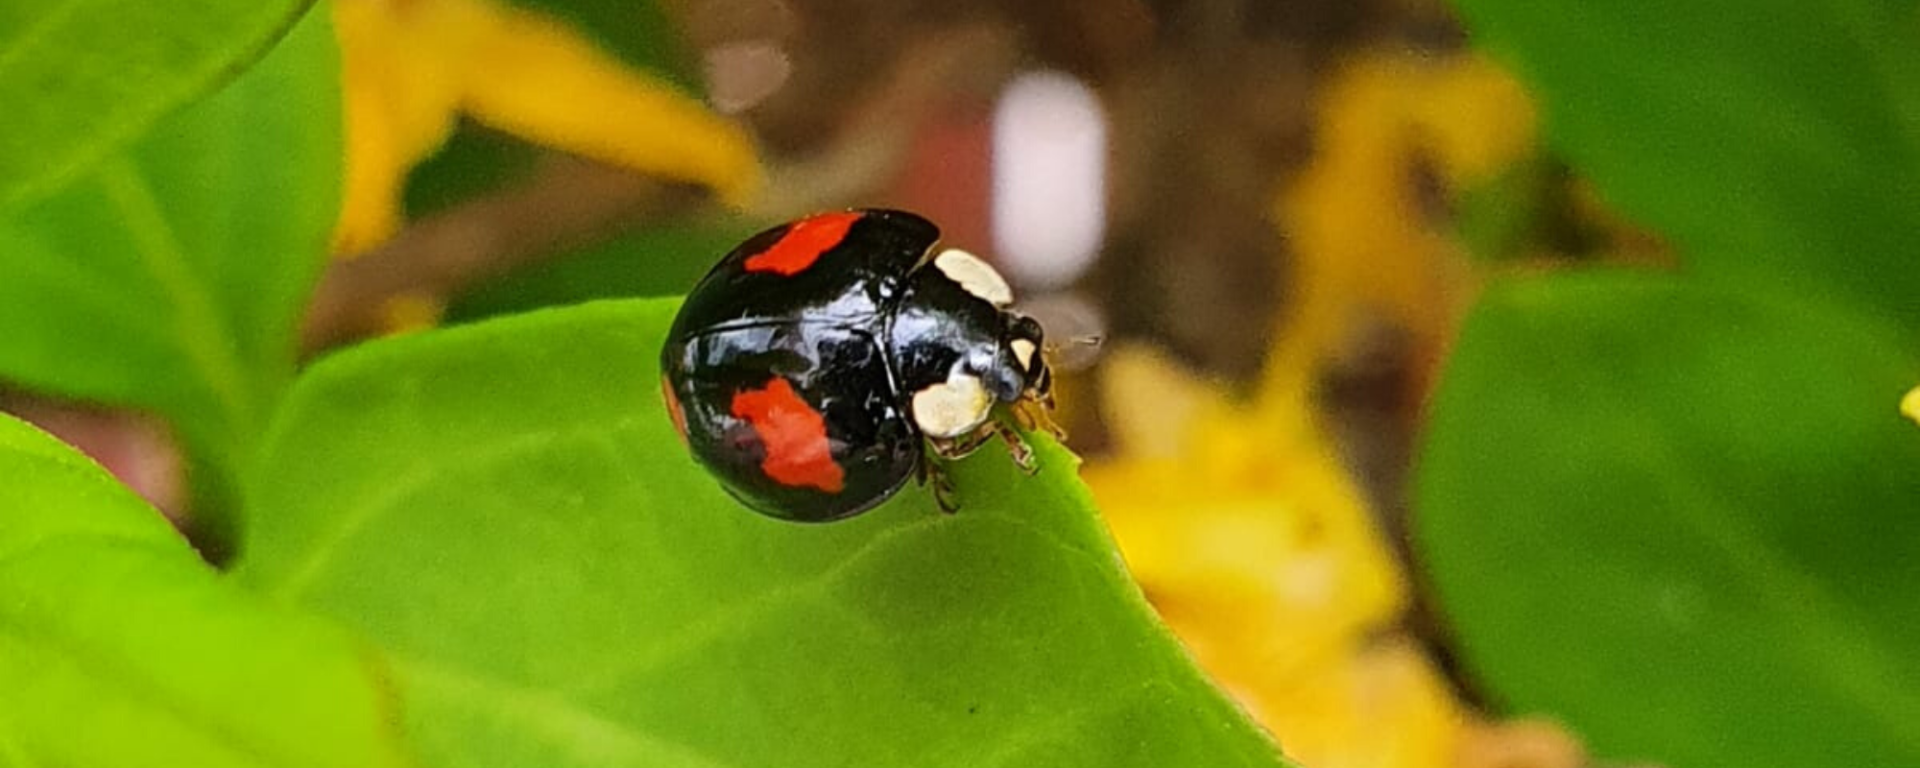 Image of a ladybird